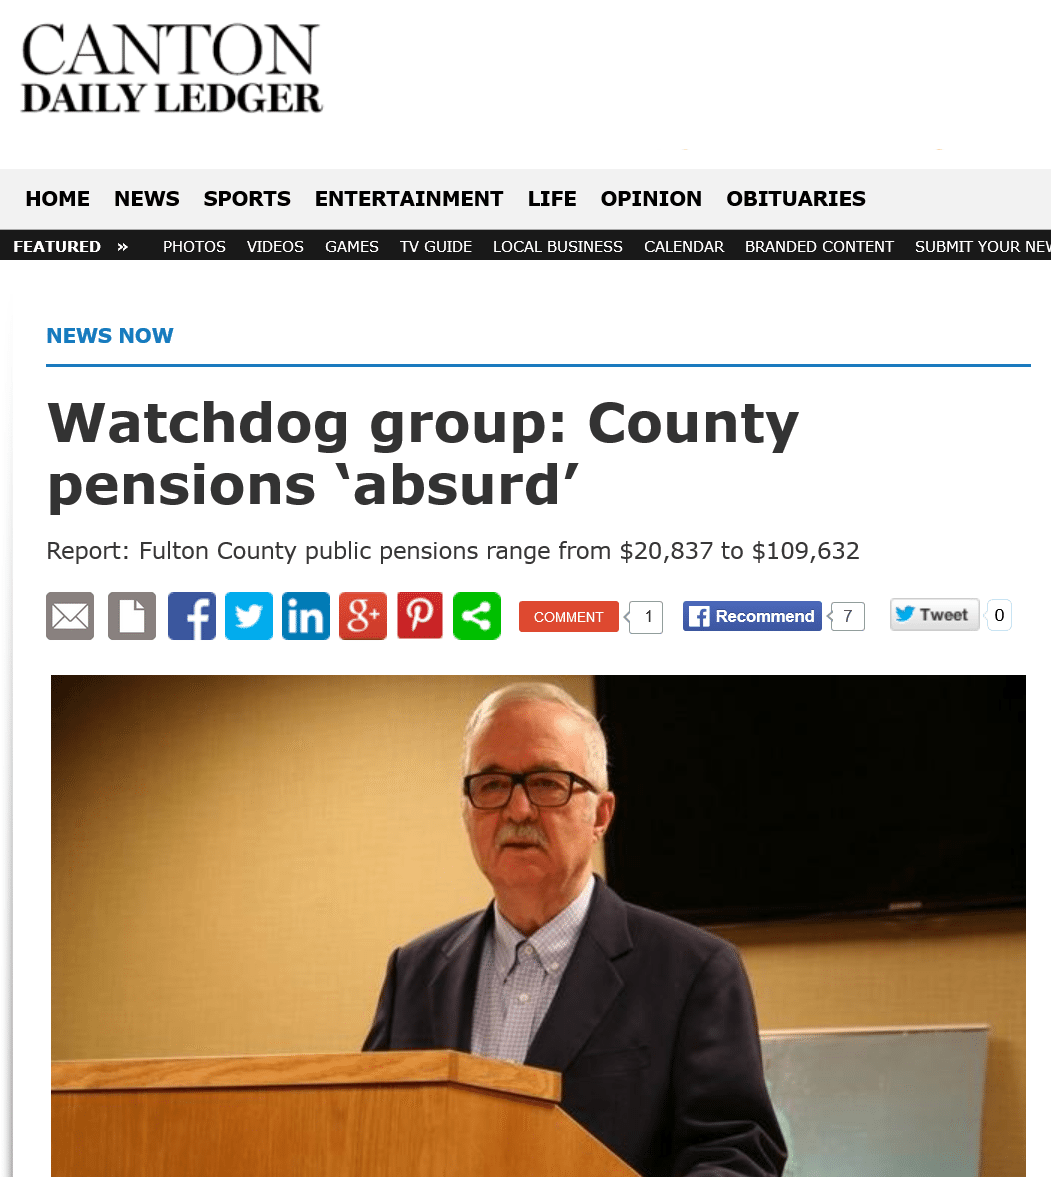 Canton Daily Ledger|Watchdog group: County pensions 'absurd'